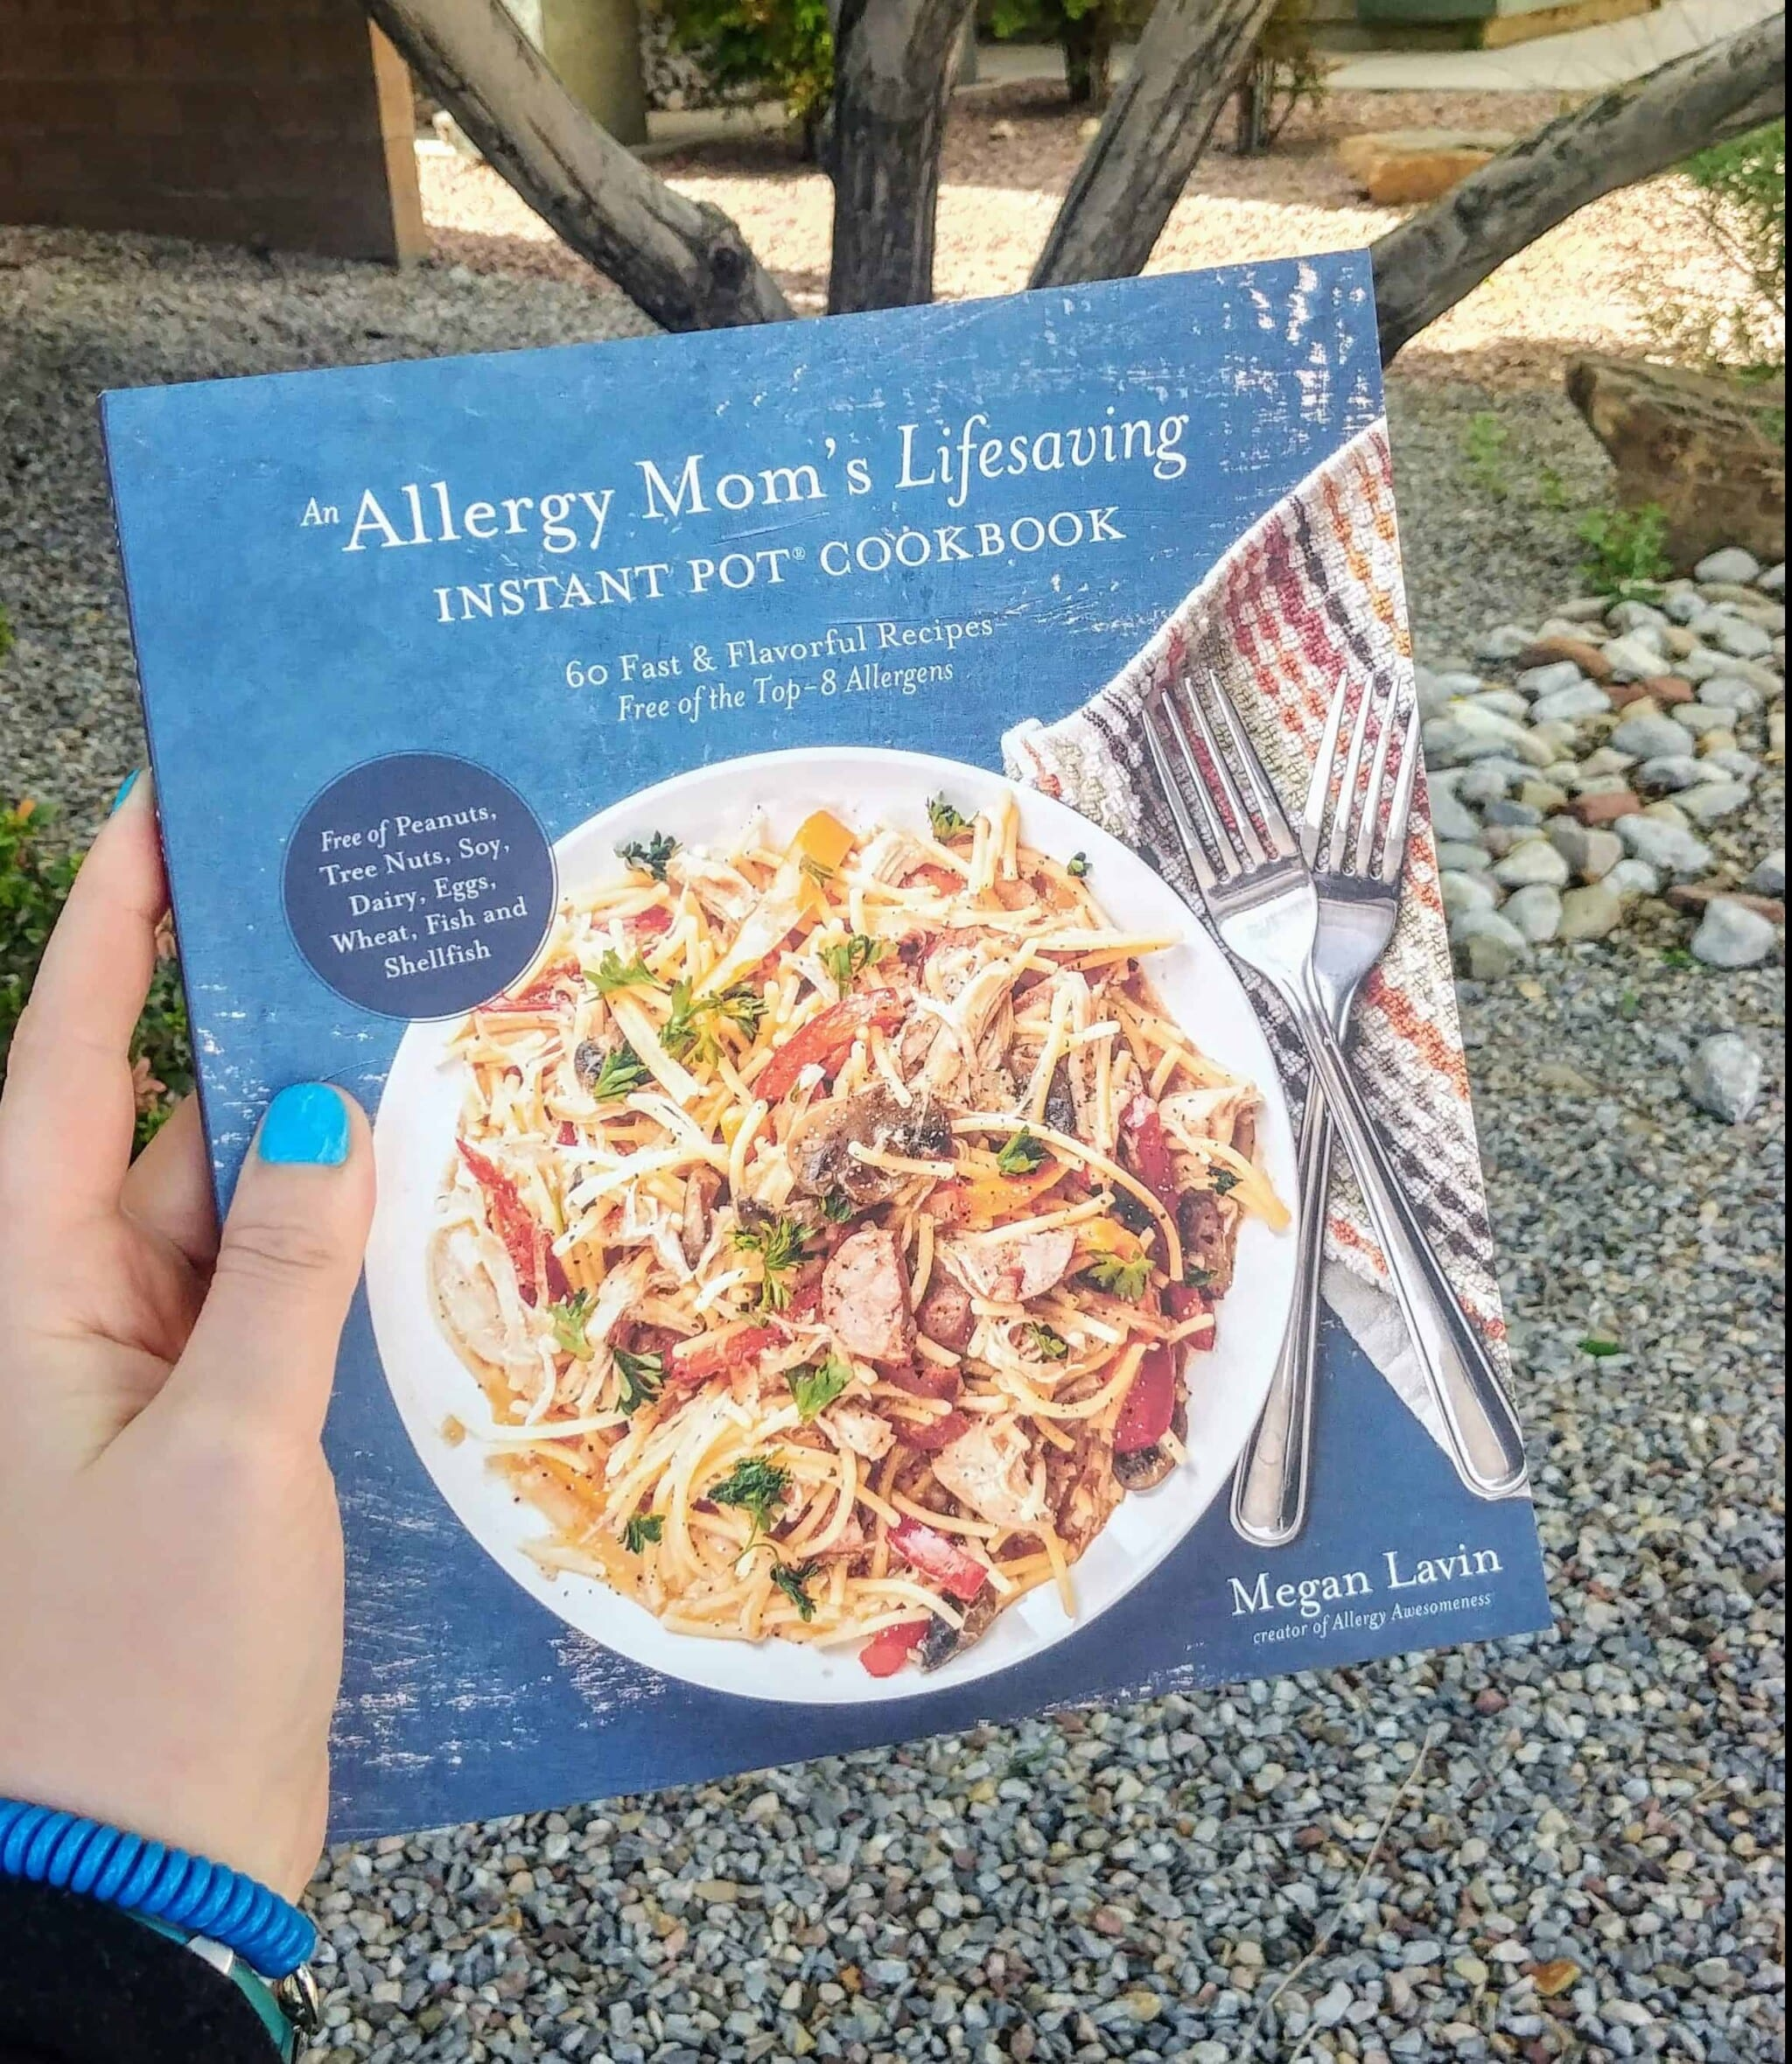 hand with blue nails holding an allergy mom's lifesaving instant pot cookbook